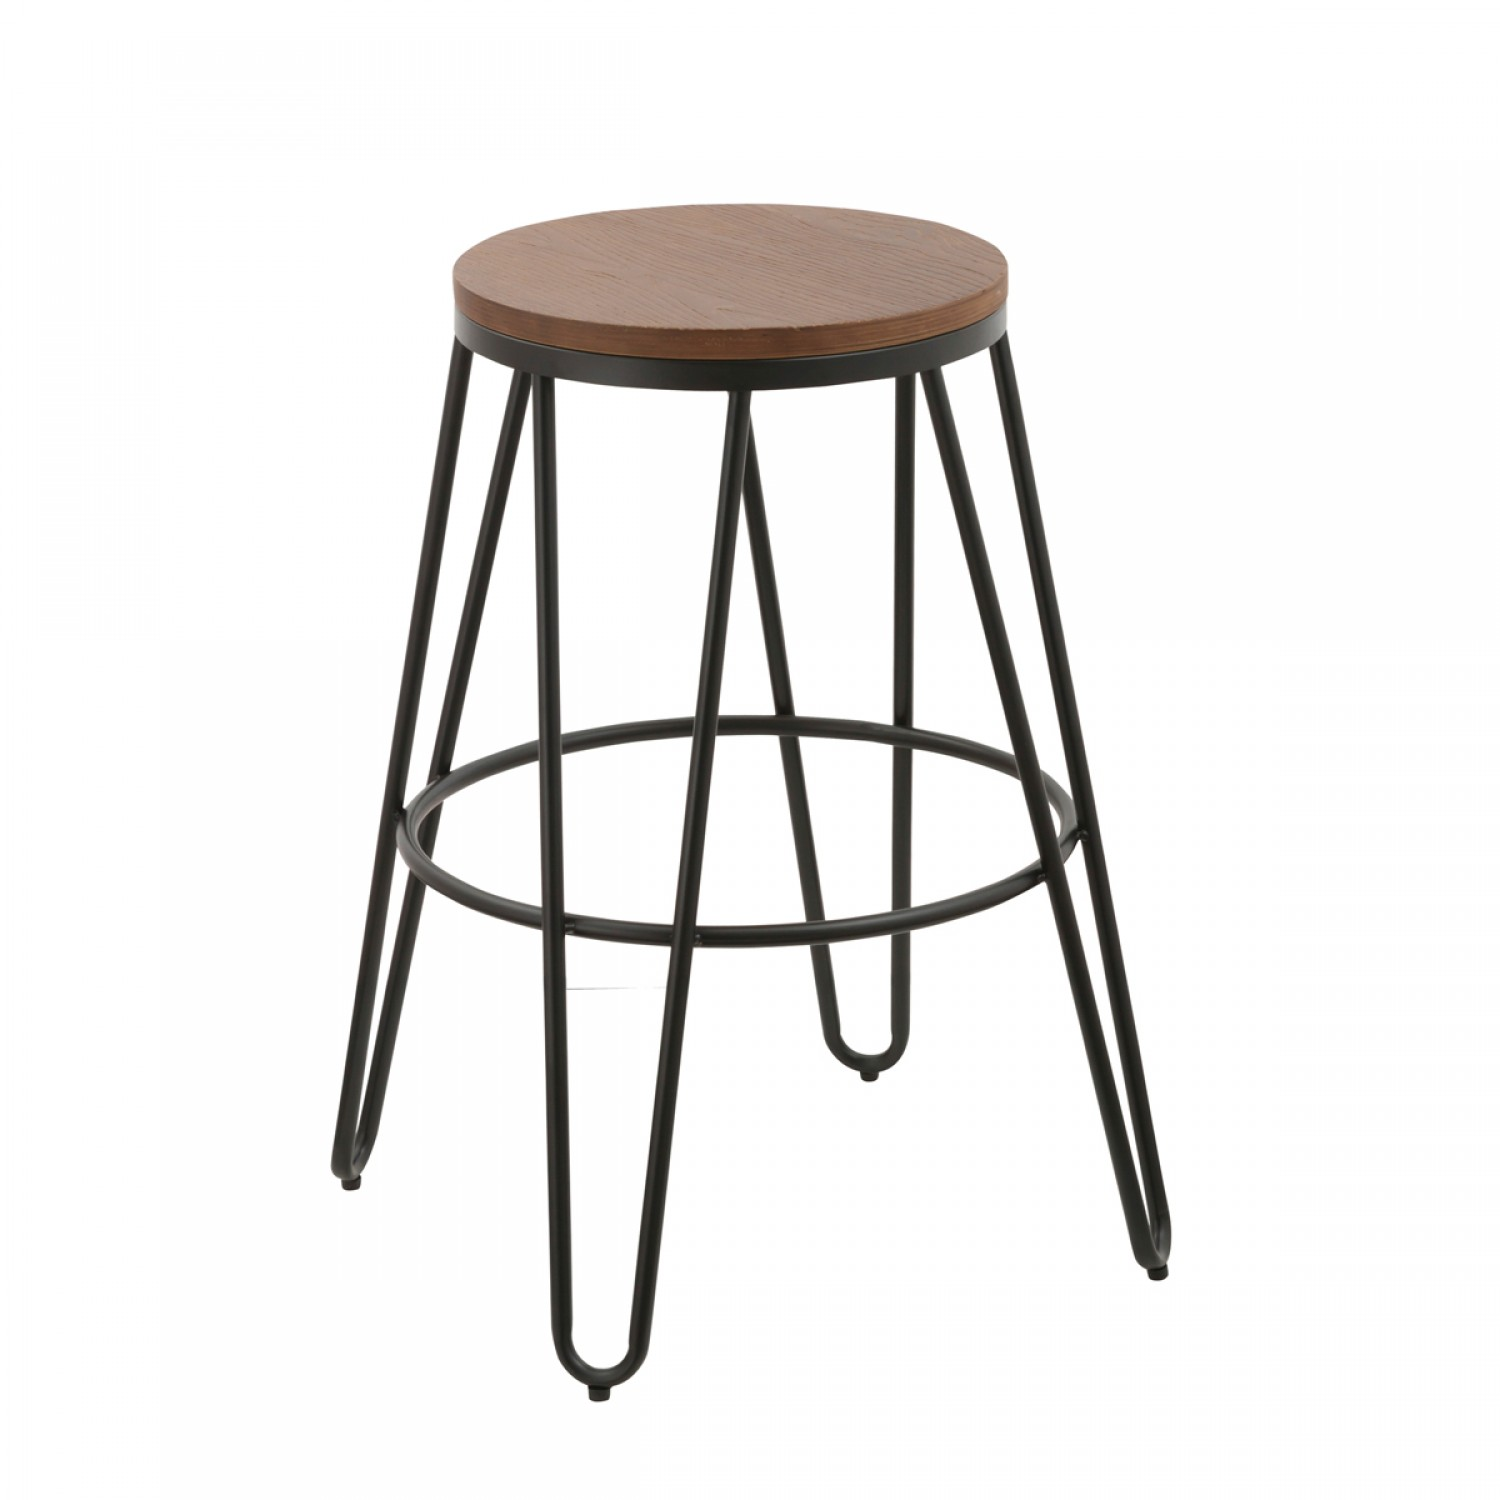 tabouret de bar loft bois et m tal noir lot de 2 koya design. Black Bedroom Furniture Sets. Home Design Ideas